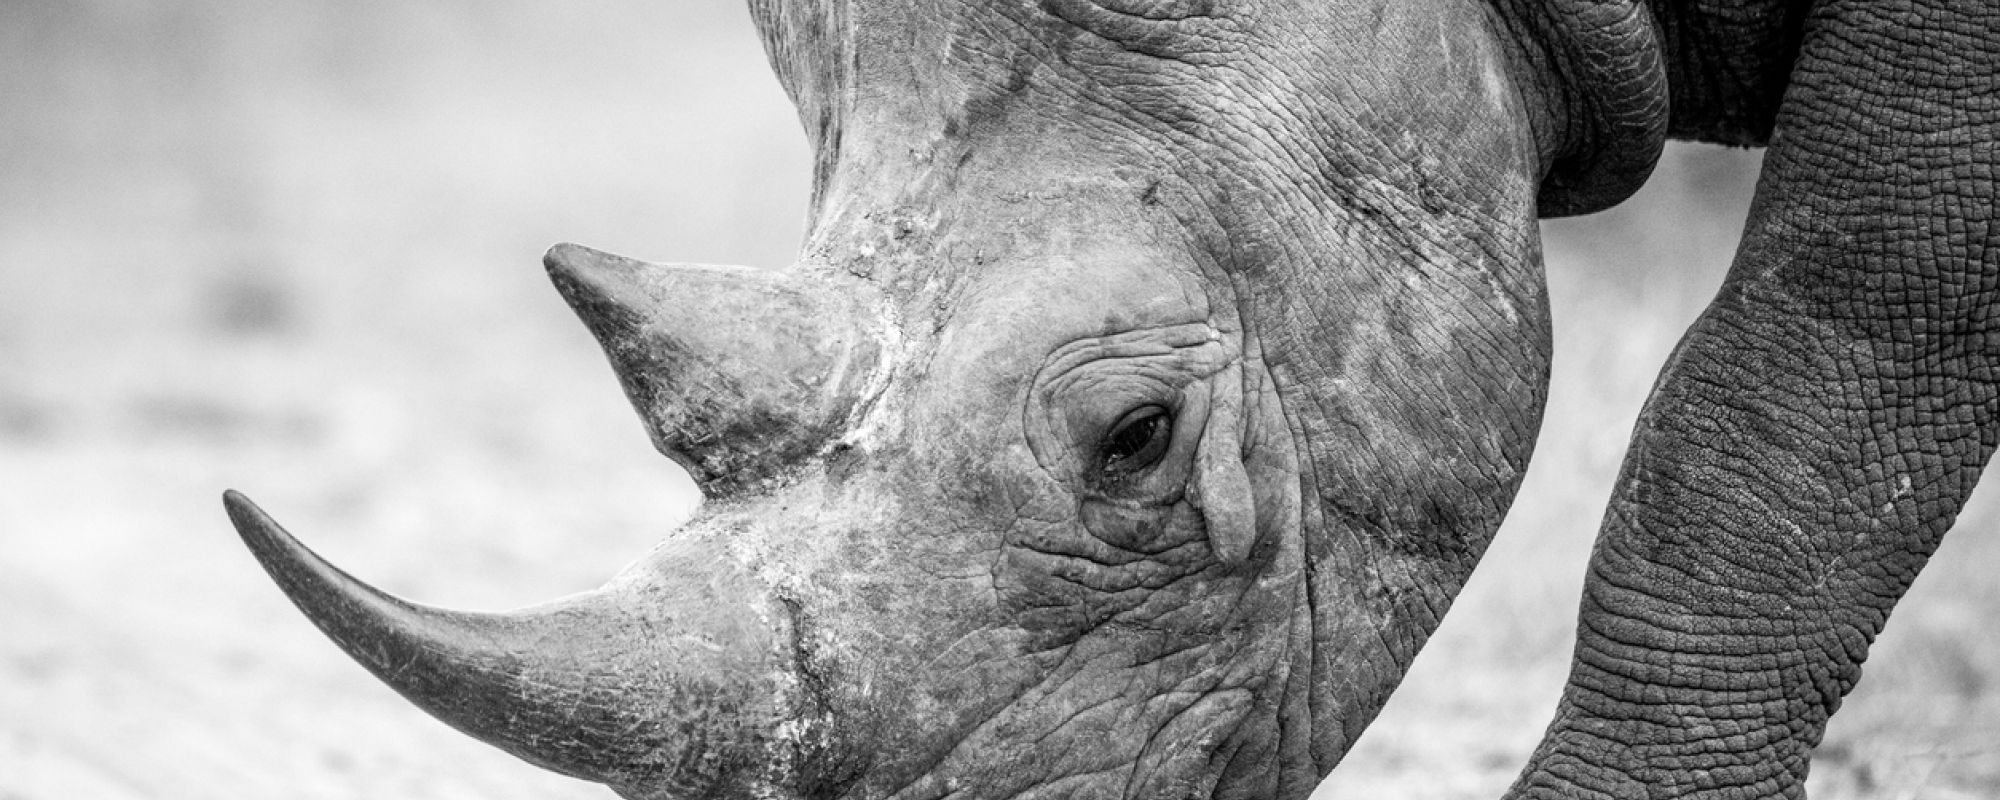 Searching the elusive Black Rhino